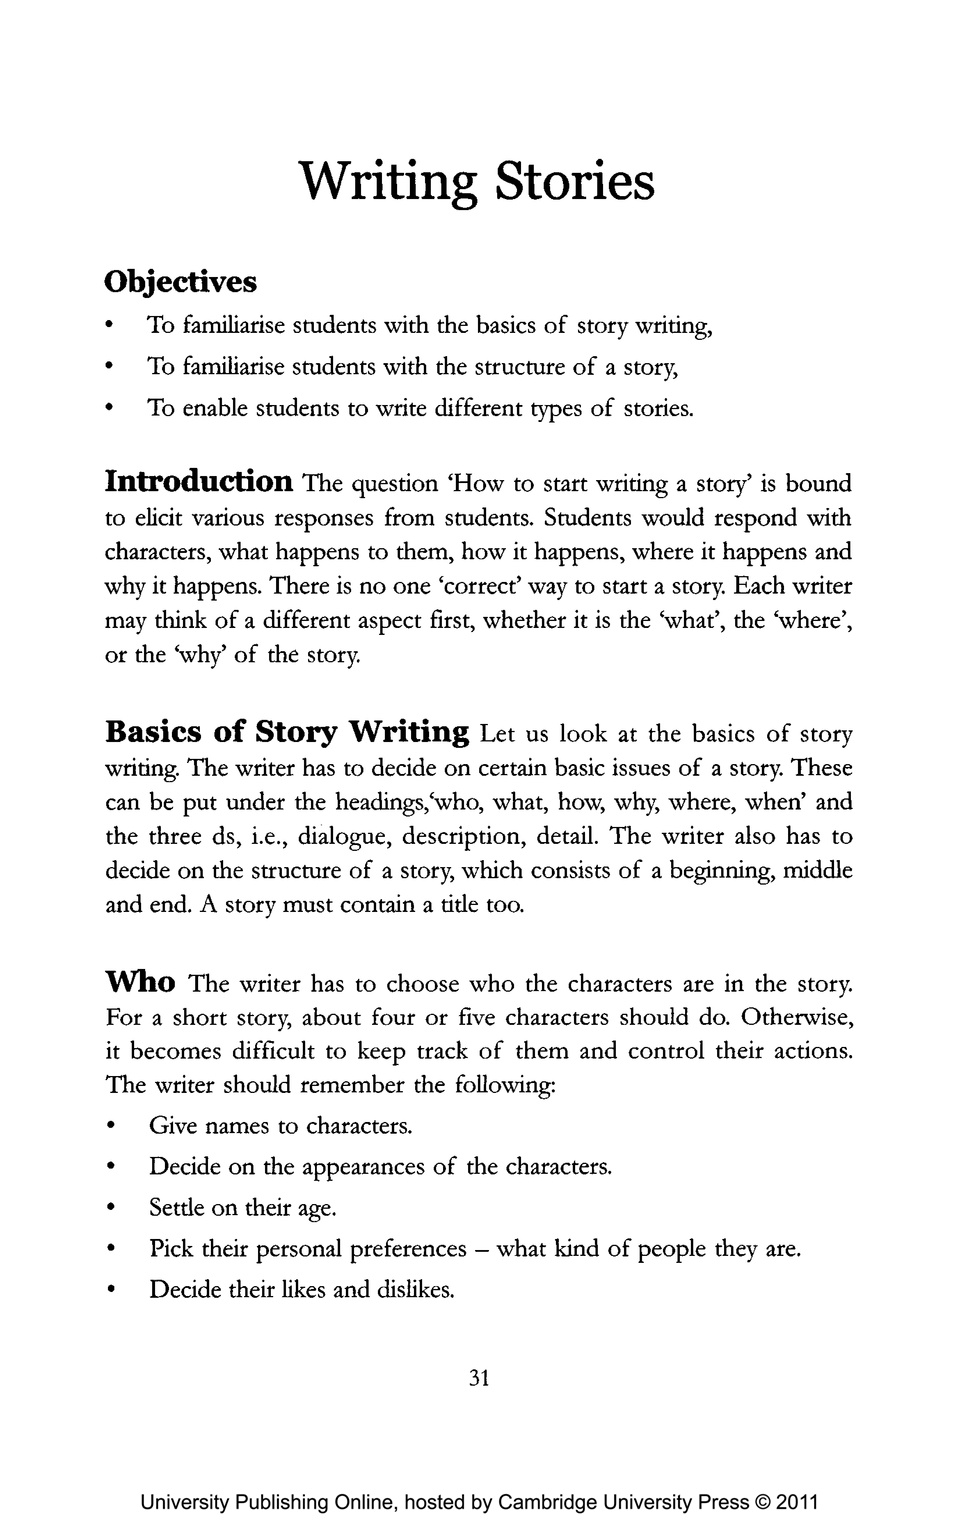 015 Short Stories In Essays Essay Example Dialogue Write Story How To Sample Research Paper 9788175968714c2 Abstrac Comparison An Introduction For Title Good Conclusion The Of Impressive Fiction Analysis Examples Format Full